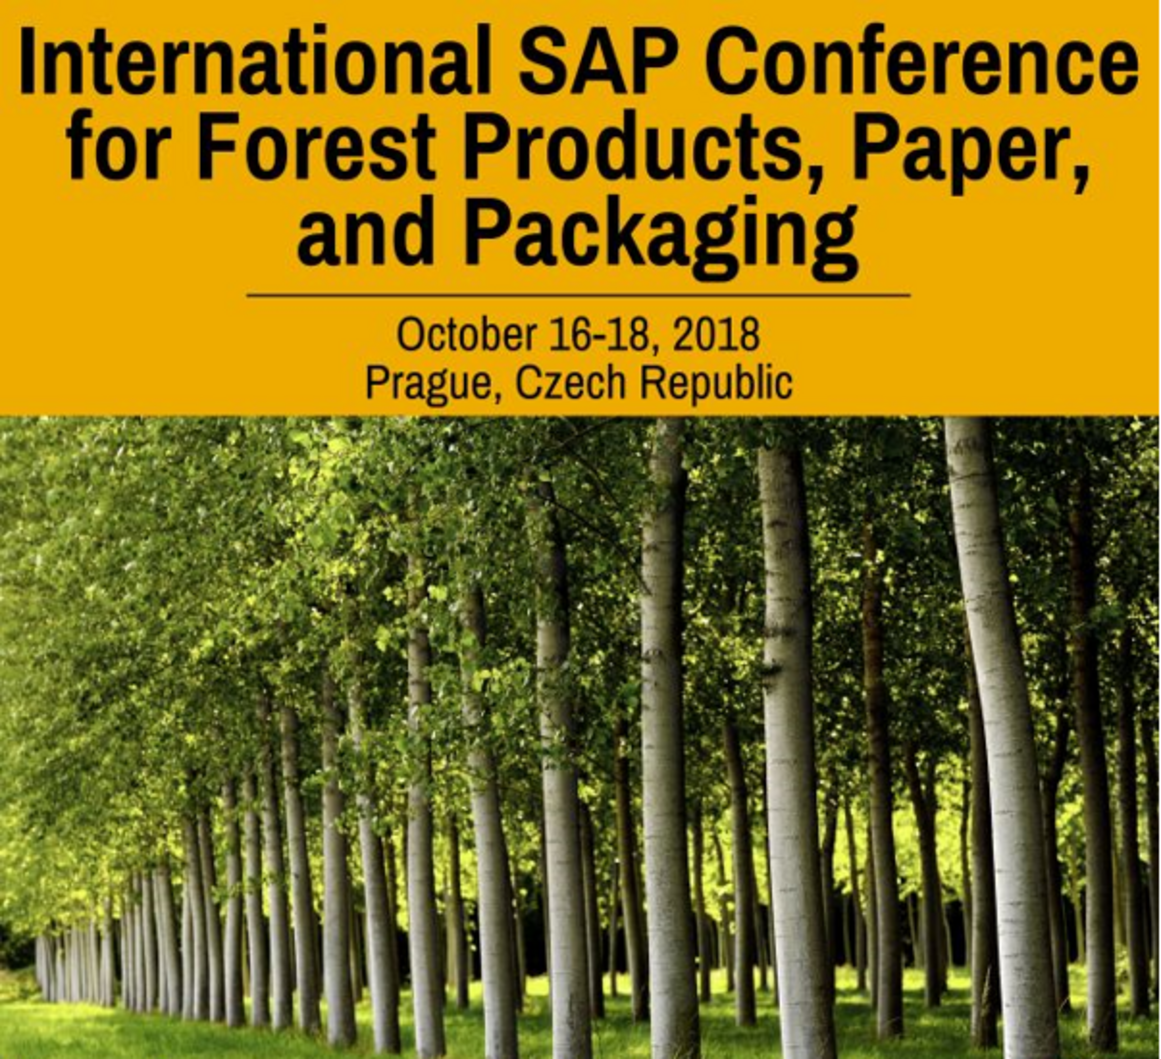 International SAP Conference for Forest Products, Paper and Packaging